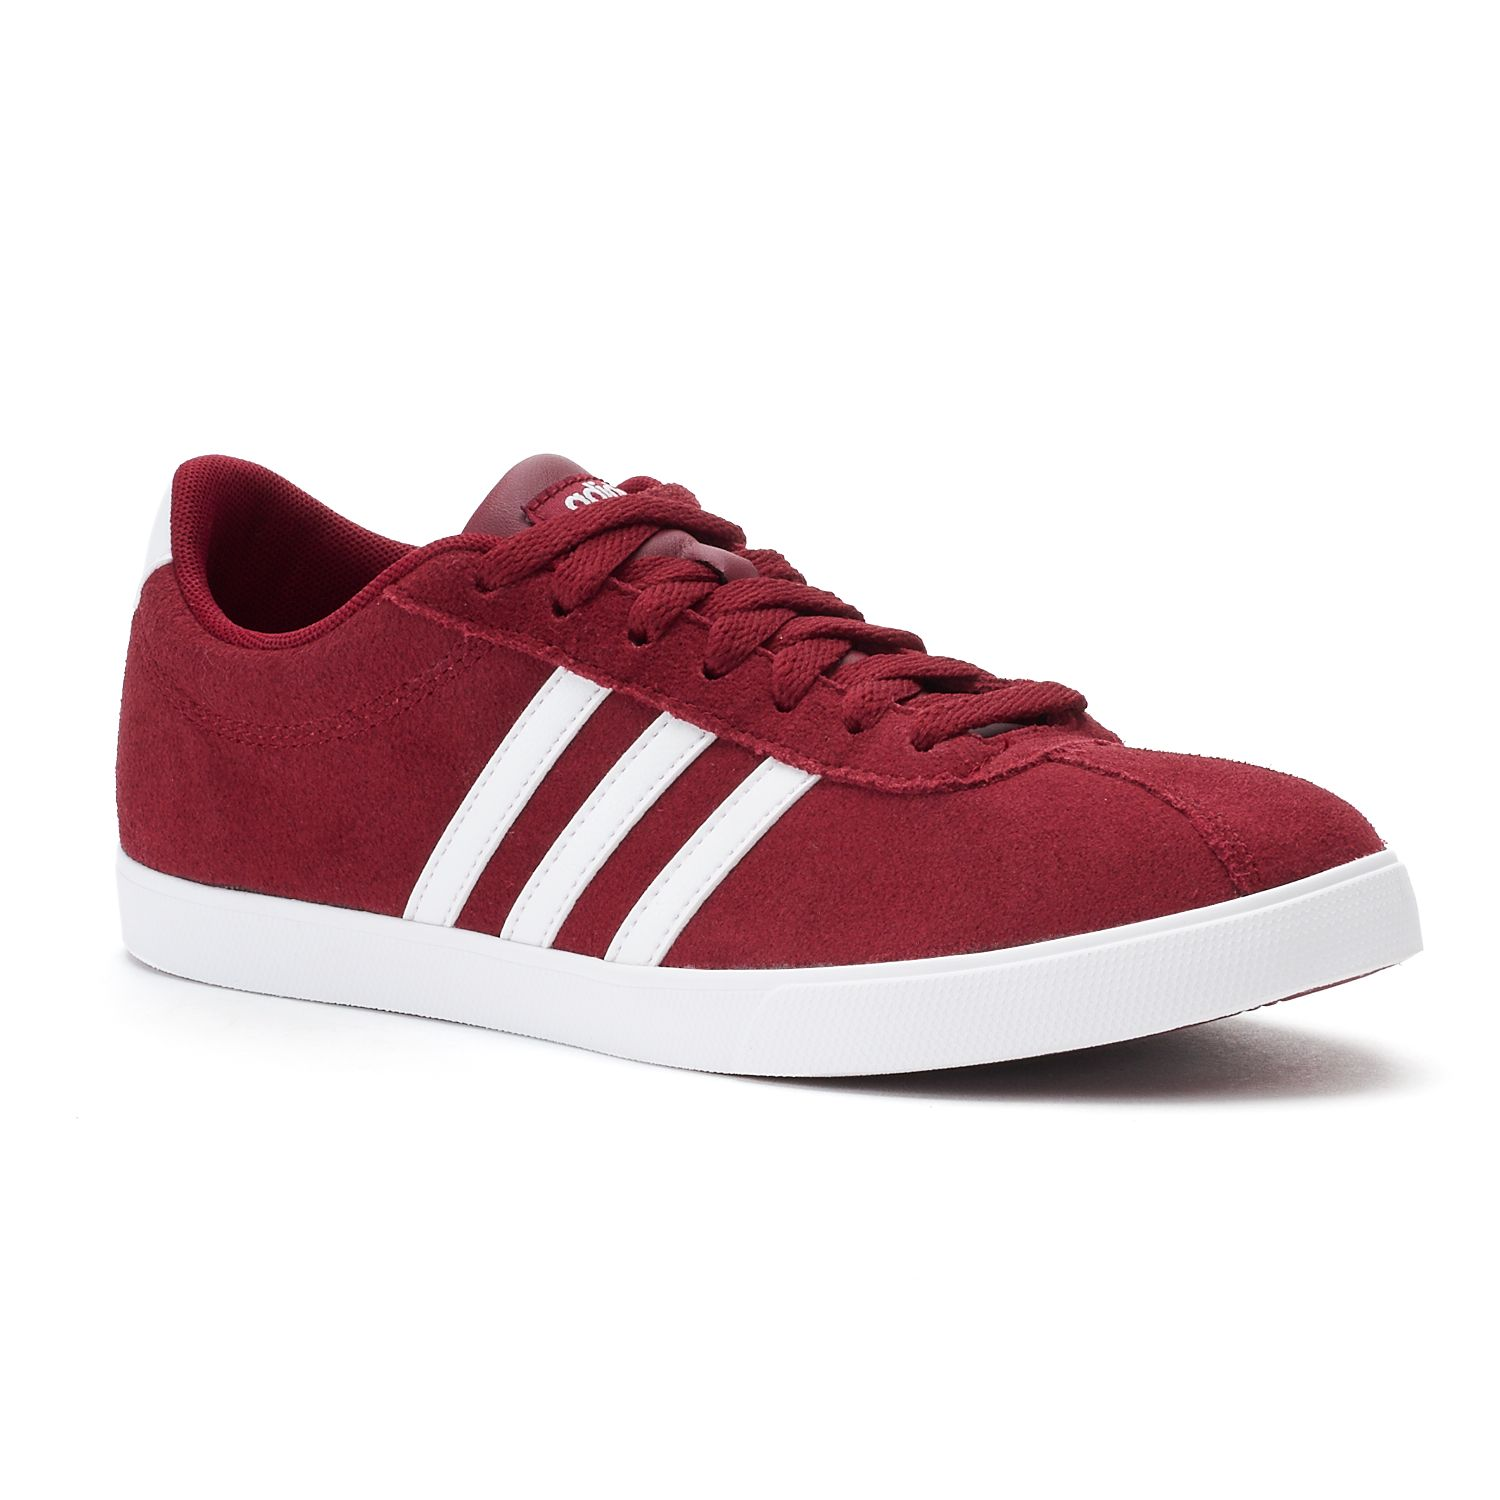 Adidas adidas Women's Deerupt Runner Casual Sneakers from Finish Line from Macys | ShapeShop